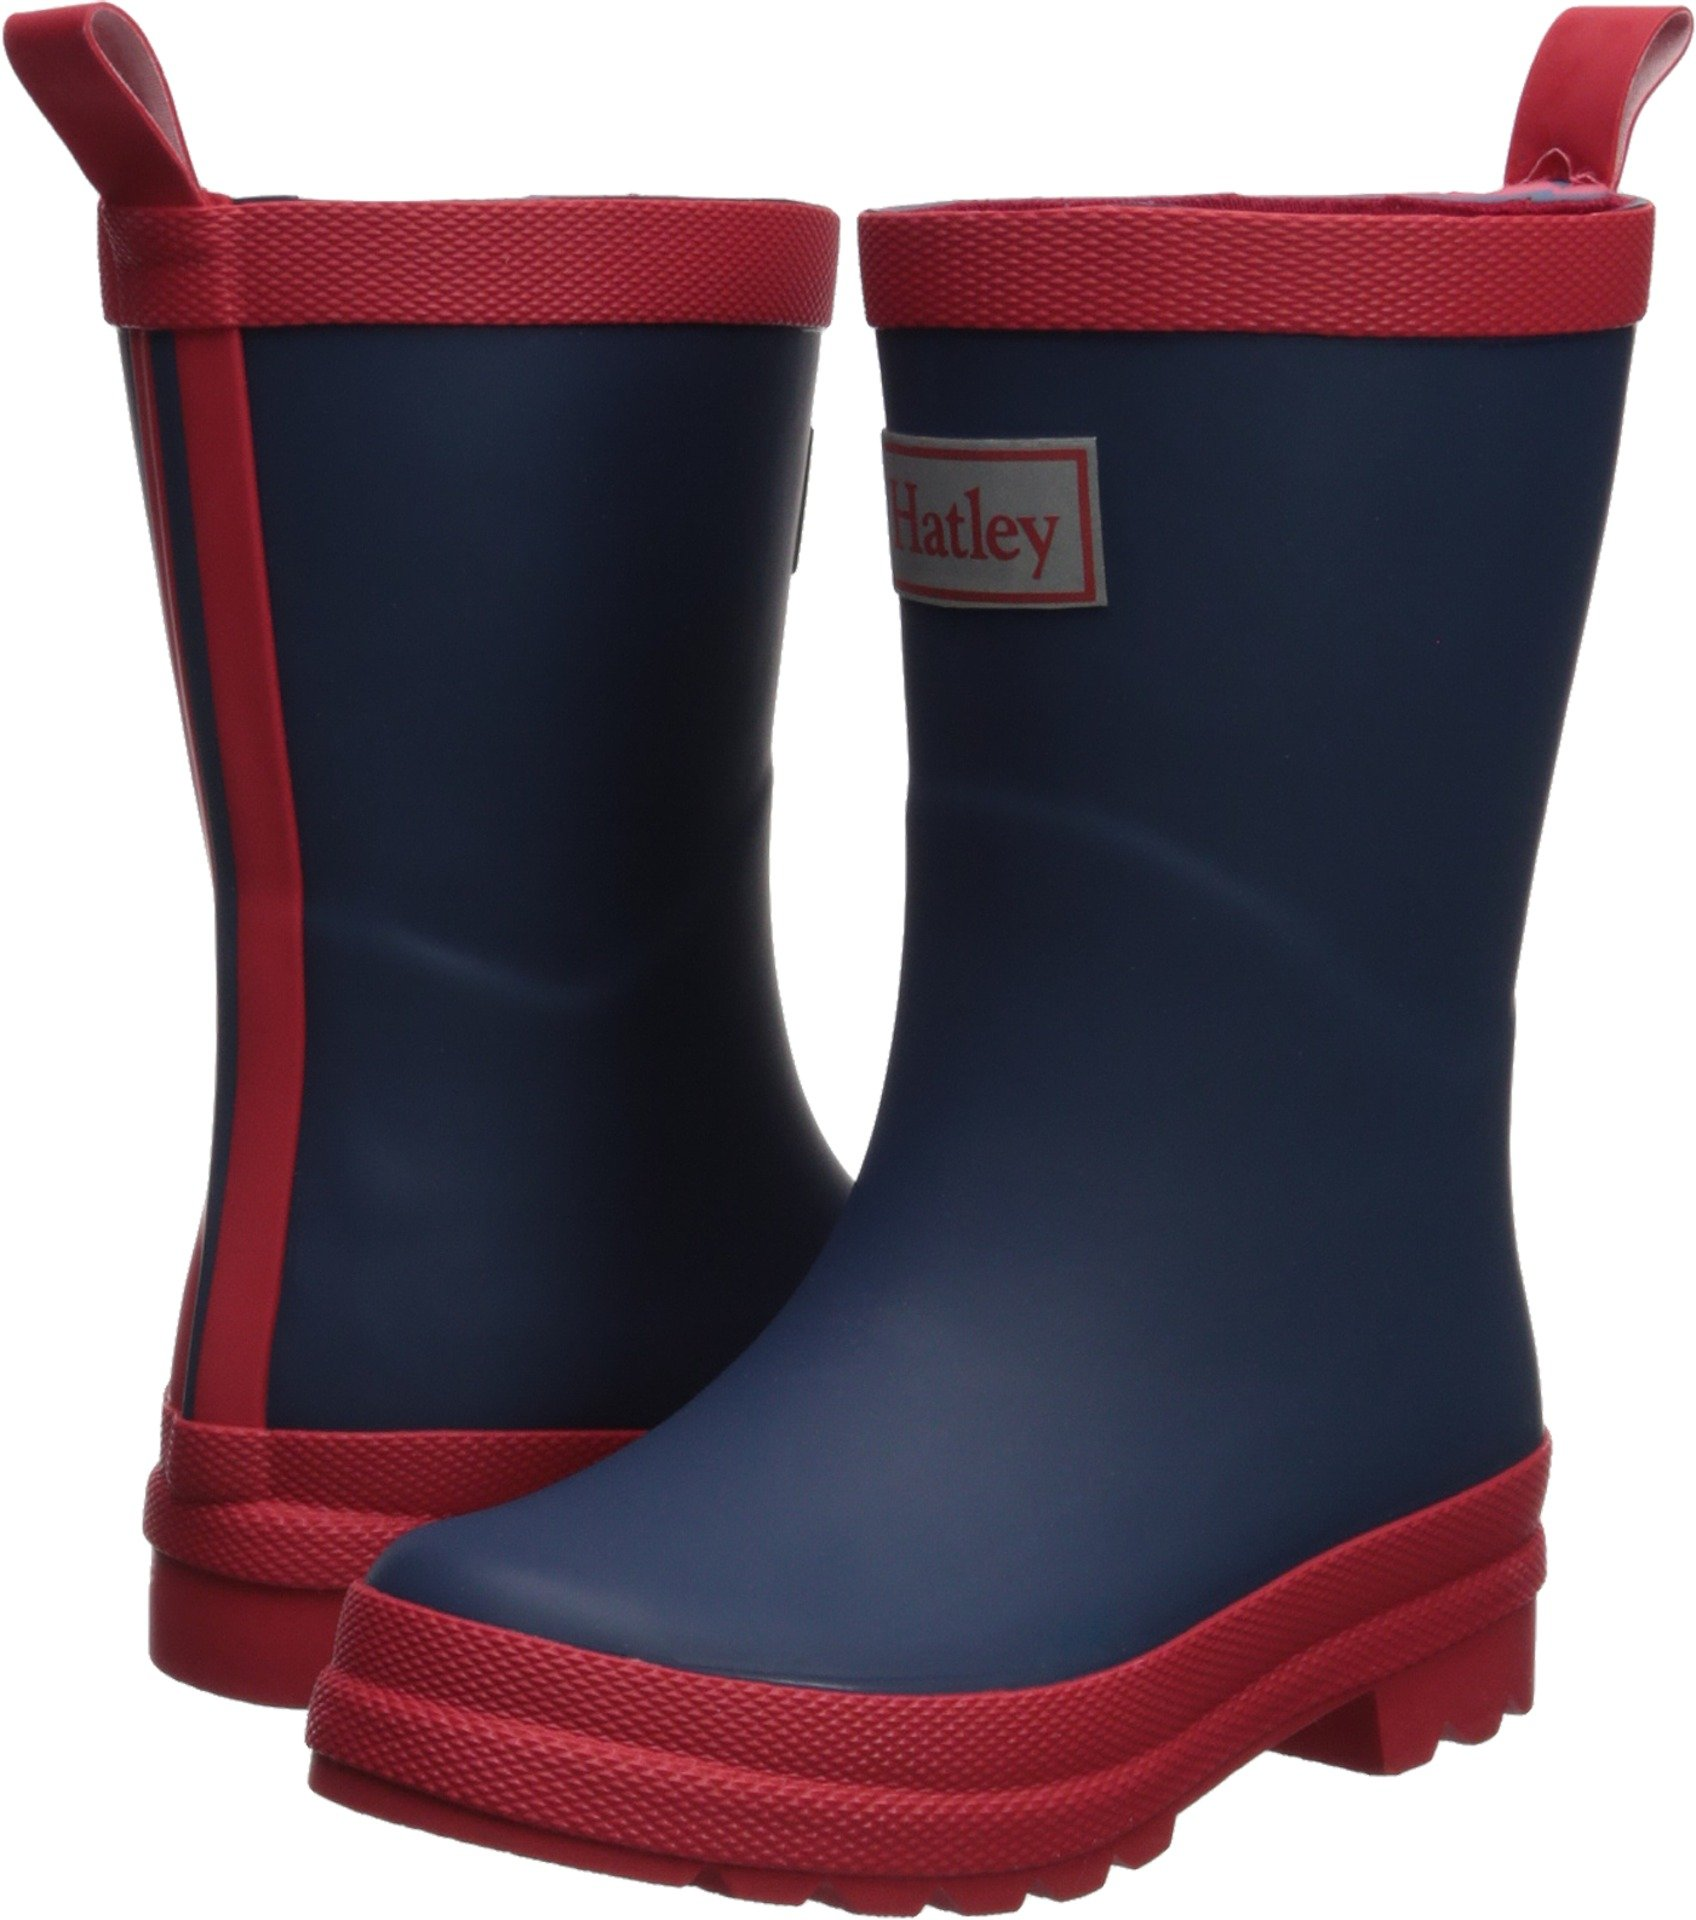 Hatley Kids Classic Rain Boots, Navy and Red, 6 M US Toddler